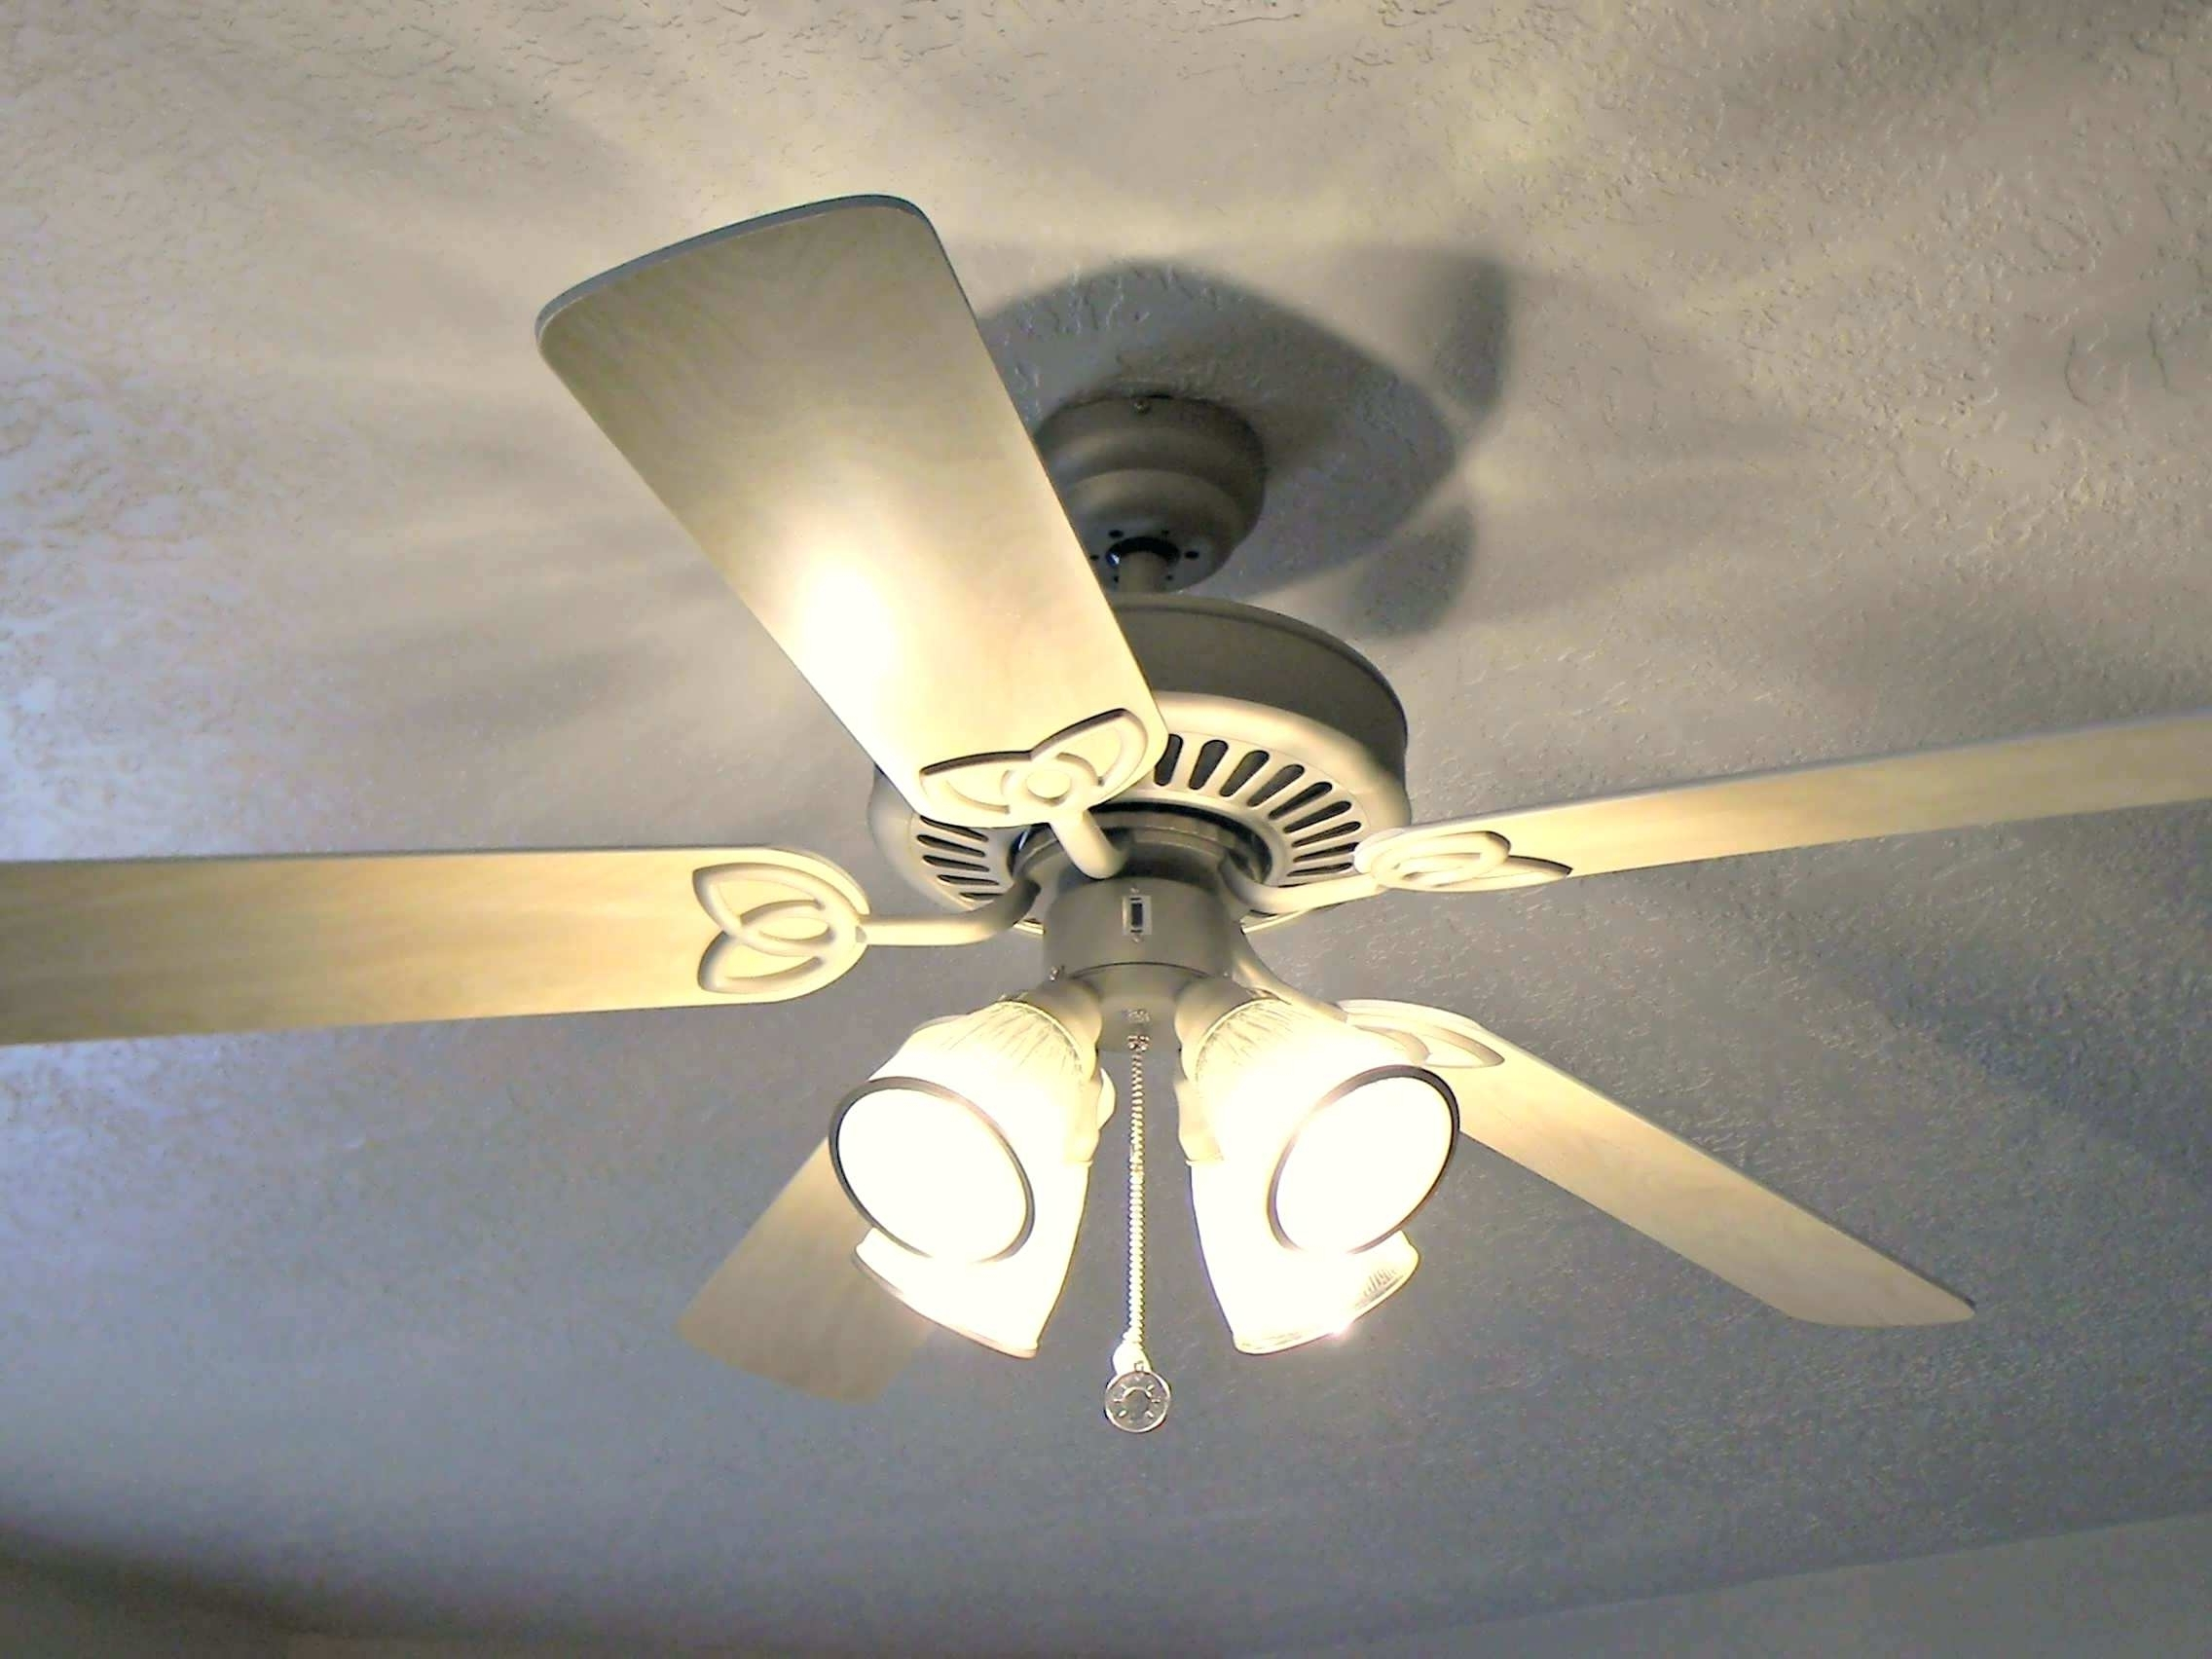 2018 Outdoor Ceiling Fans At Menards With Light: Variety Of Styles To Complement Your Home Decor With Menards (View 8 of 20)